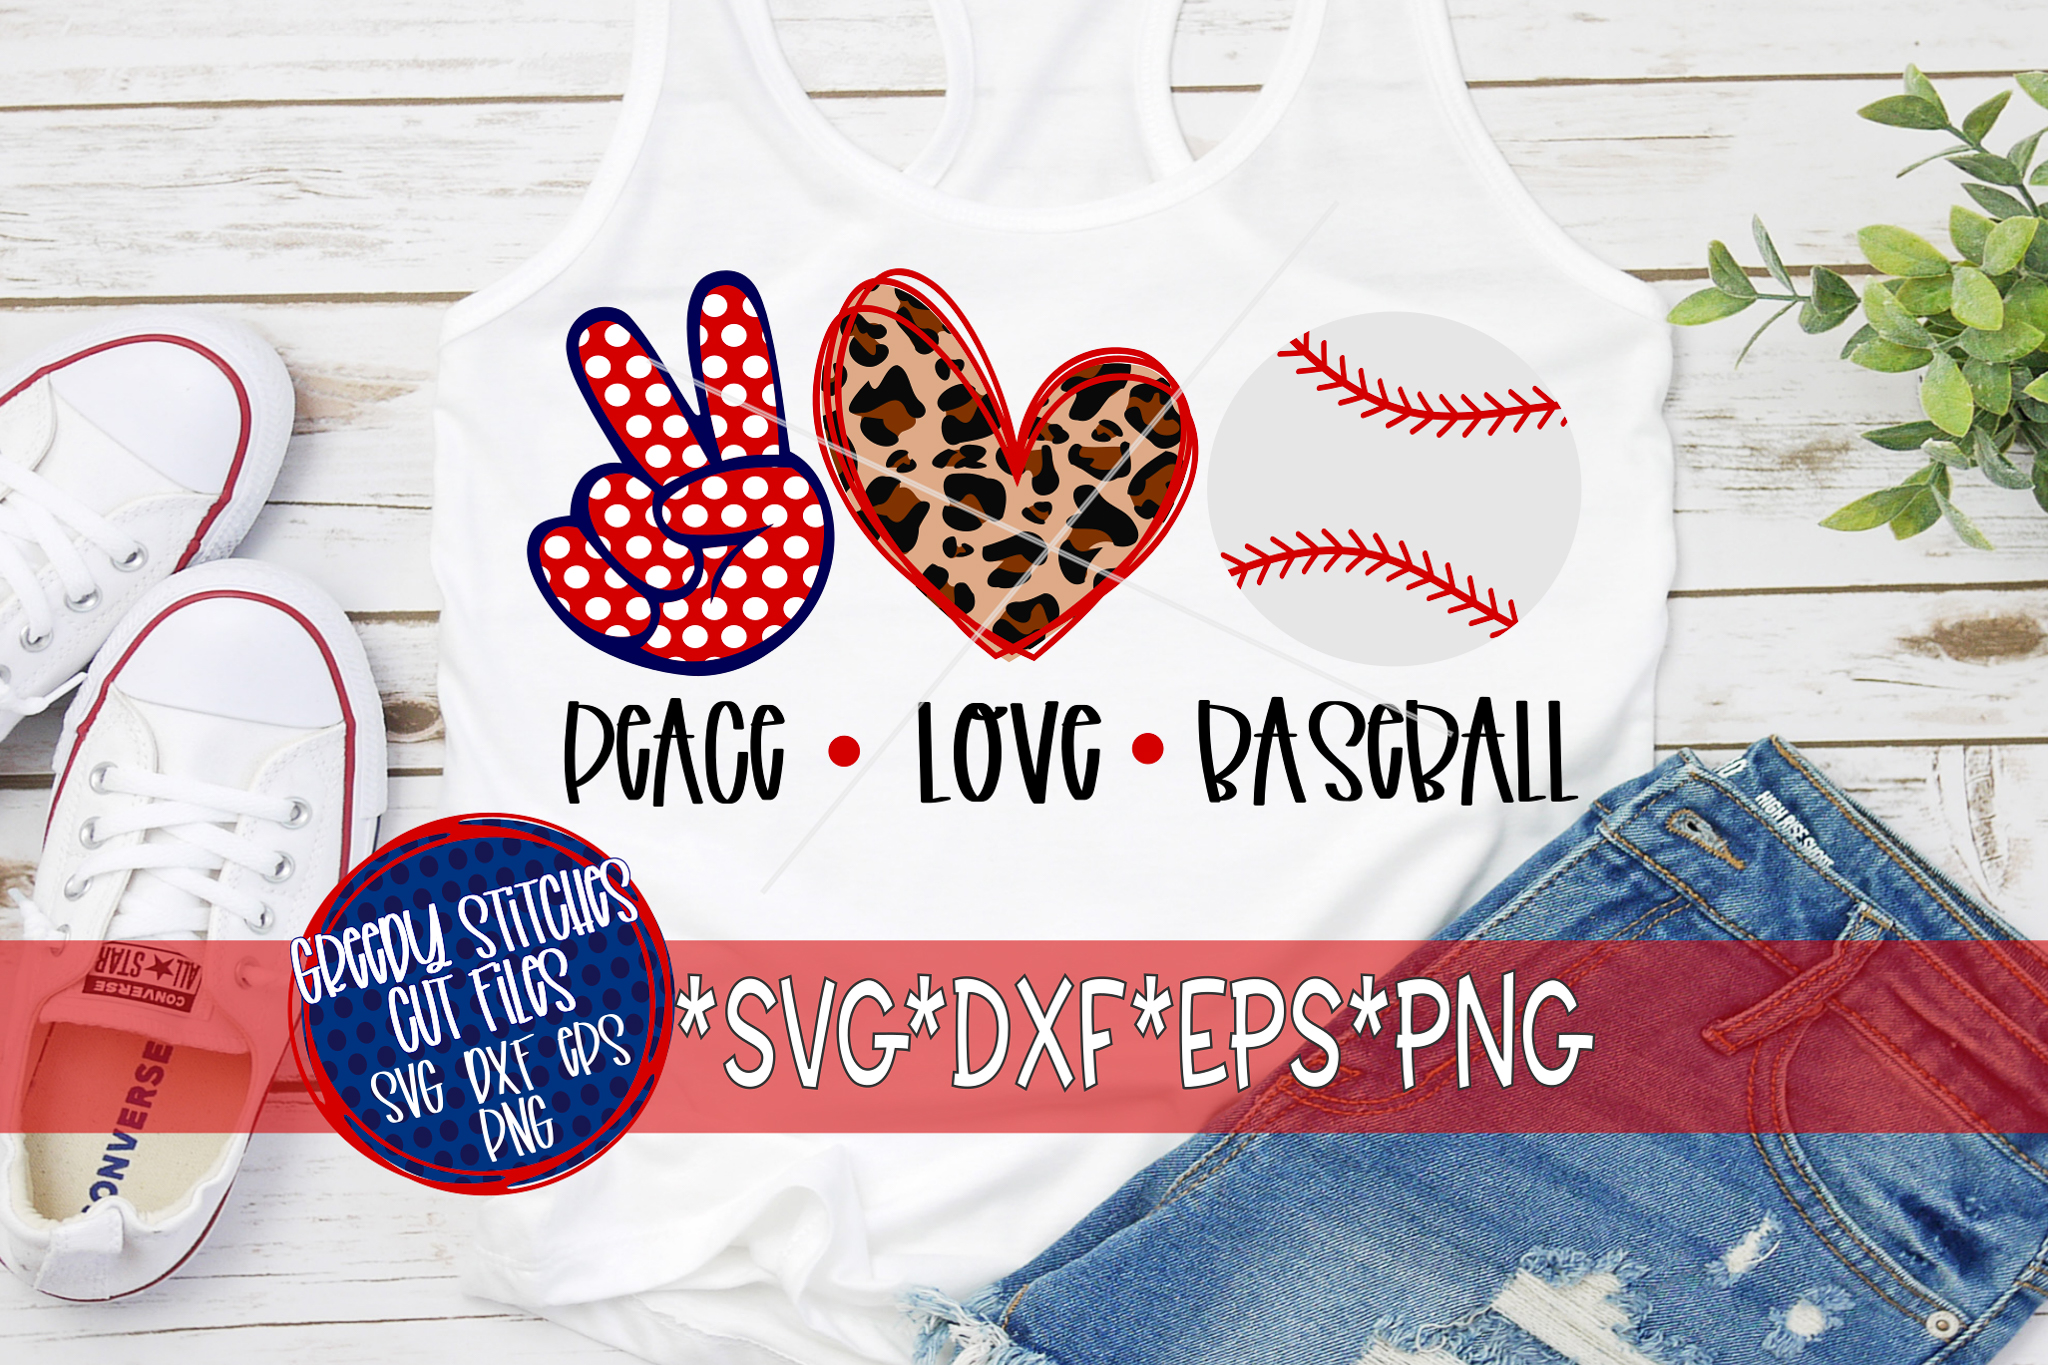 Download Peace Love Baseball SVG, DXF, EPS, PNG Files